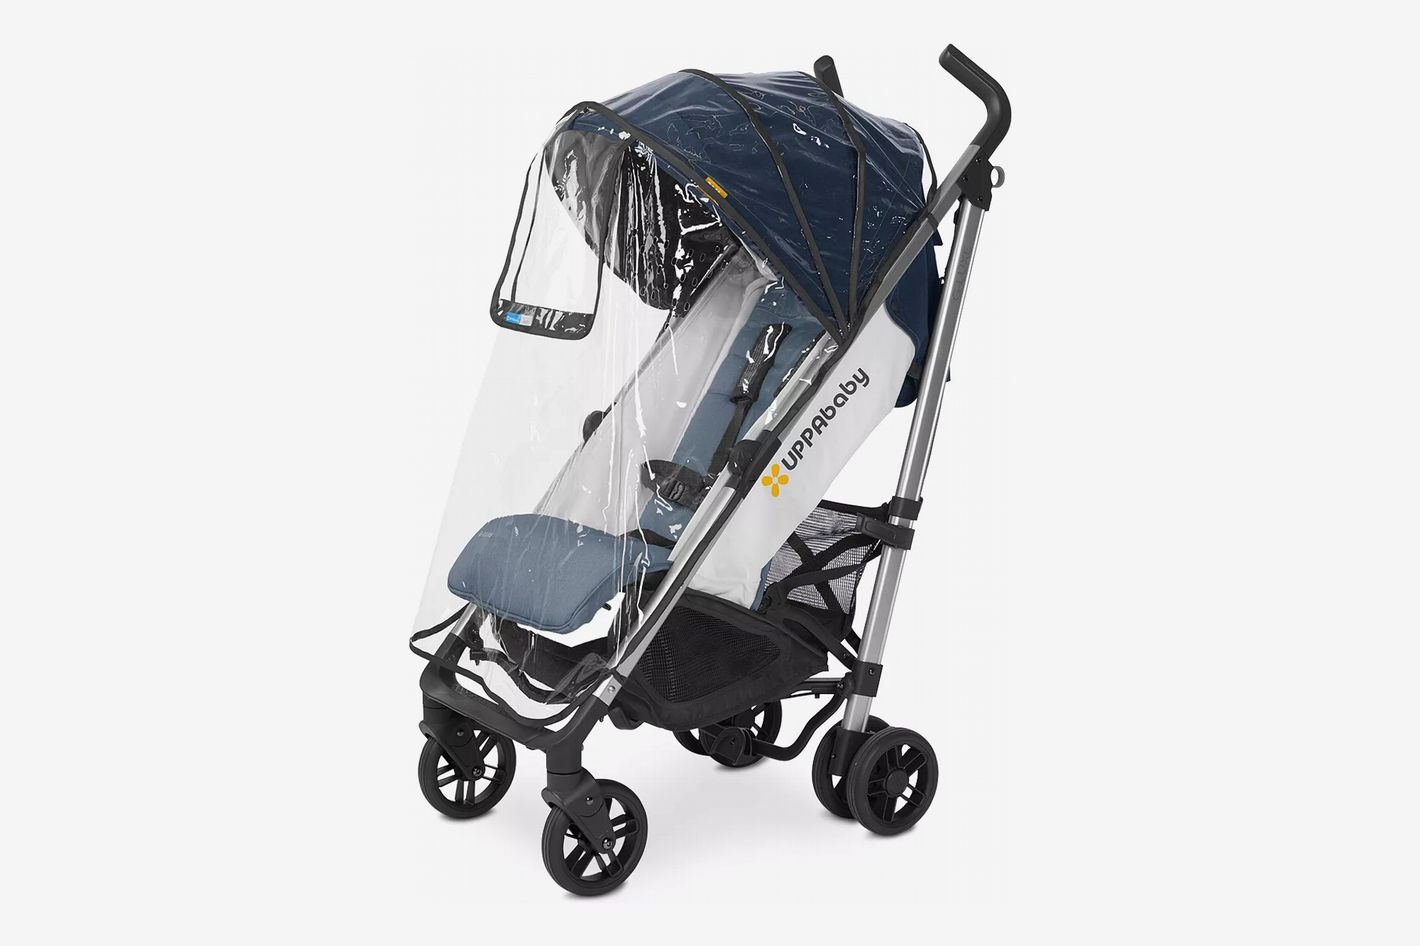 Uppababy G-Series Rain Shield & 8 Best Umbrella Strollers for Rain 2019